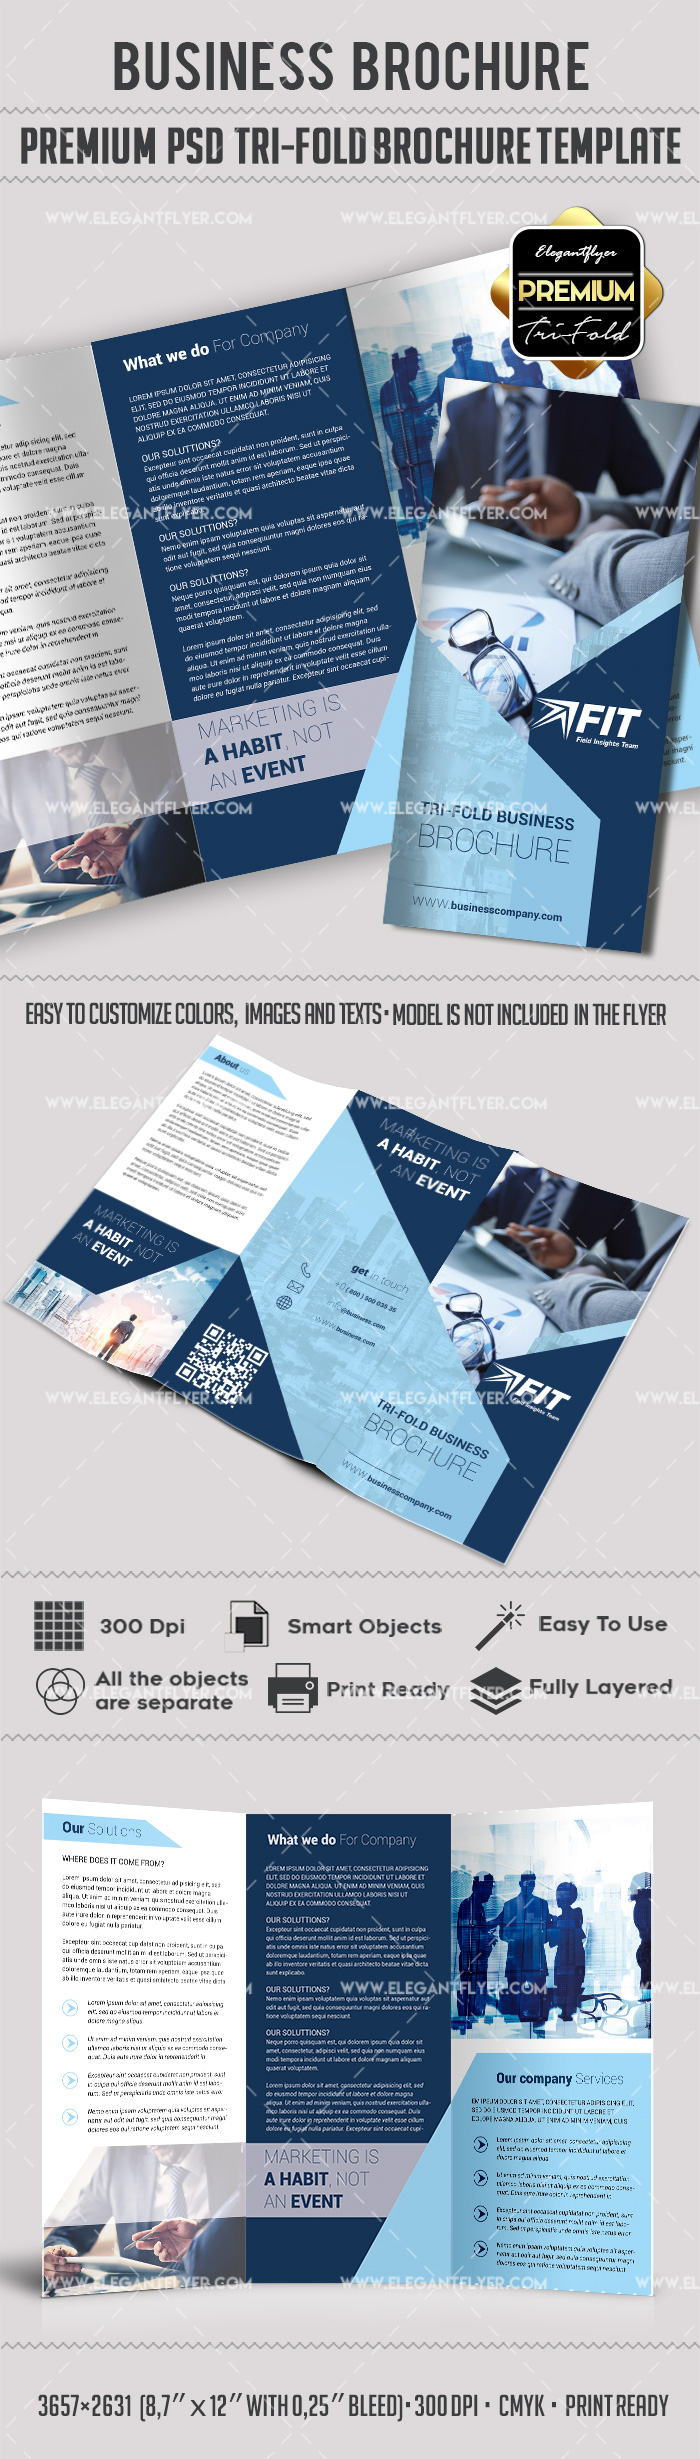 psd brochure templates - photoshop brochure template by elegantflyer